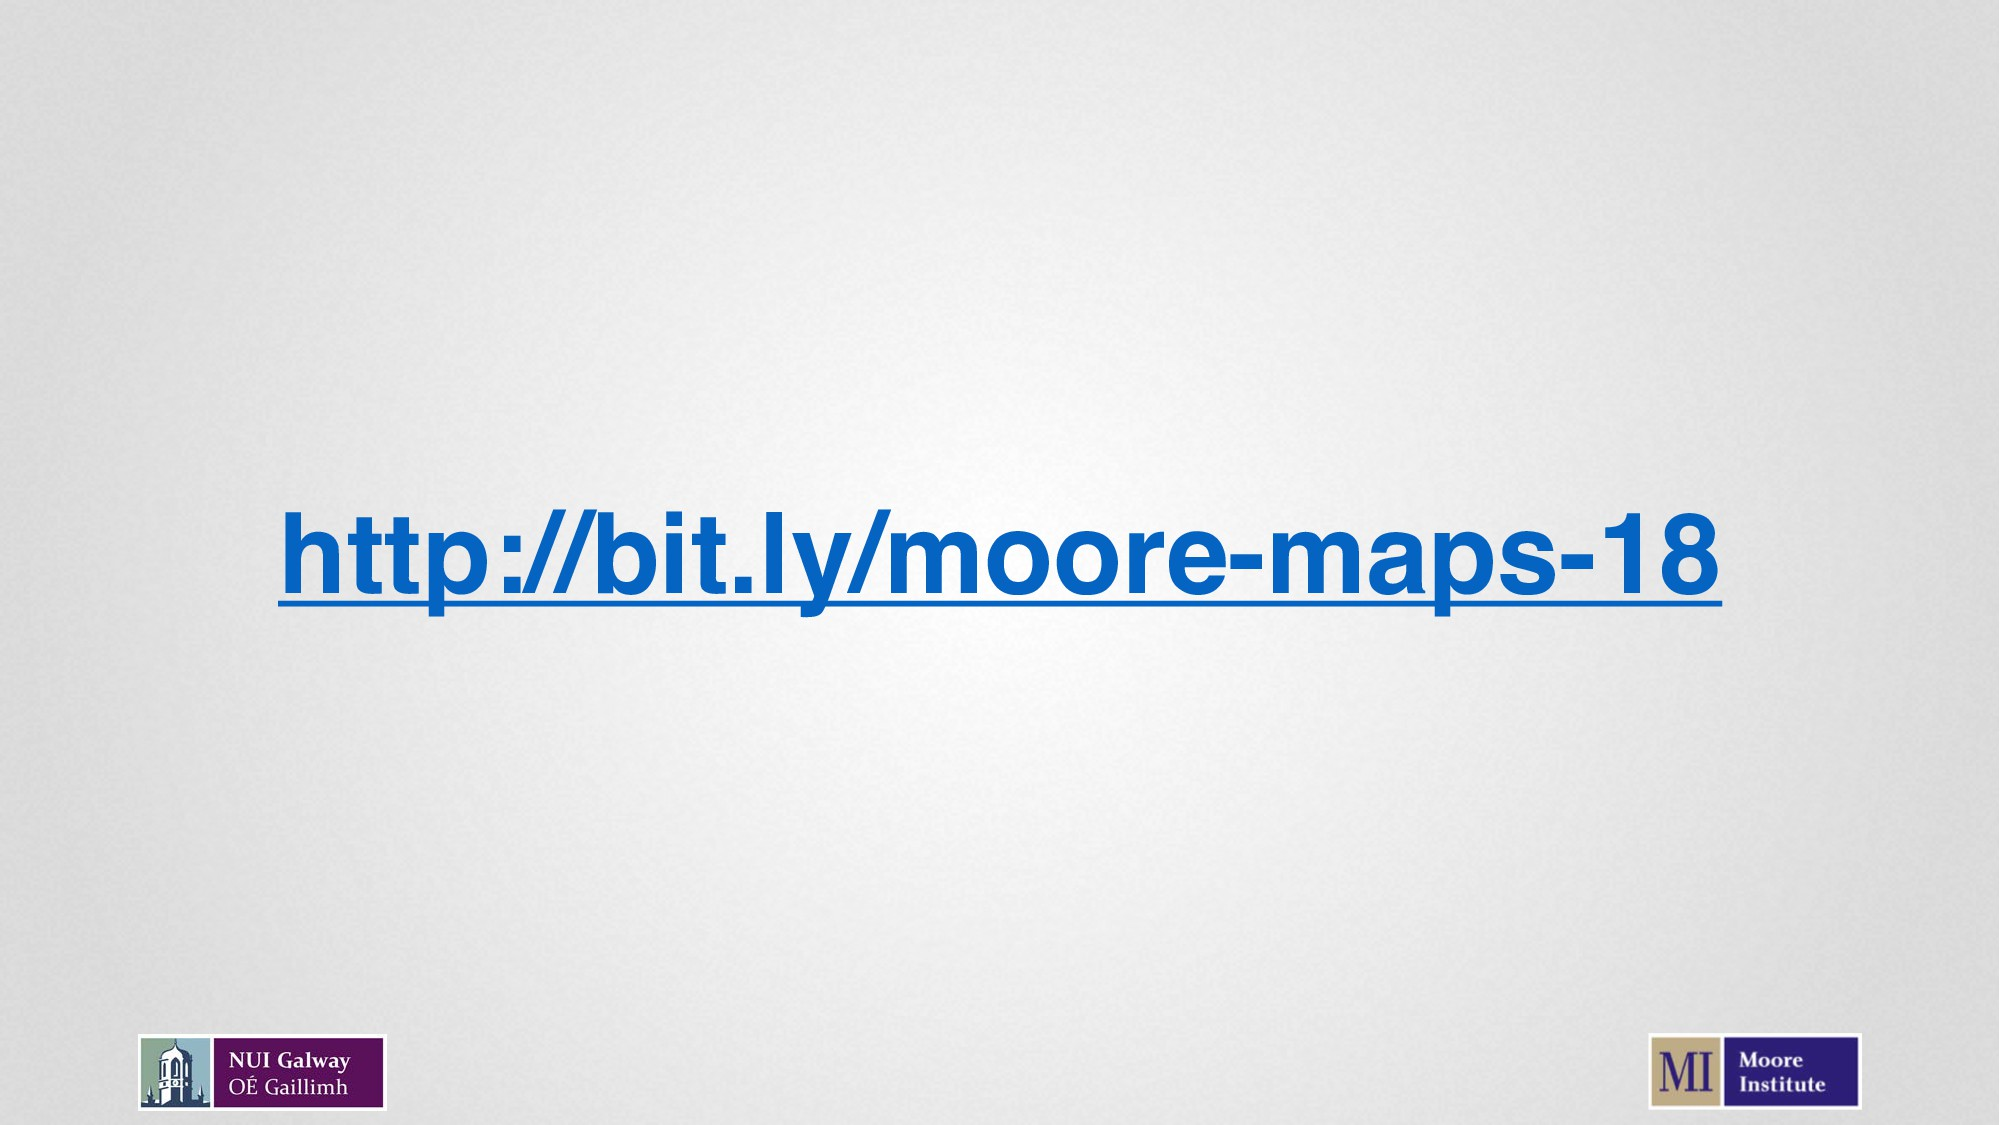 http://bit.ly/moore-maps-18